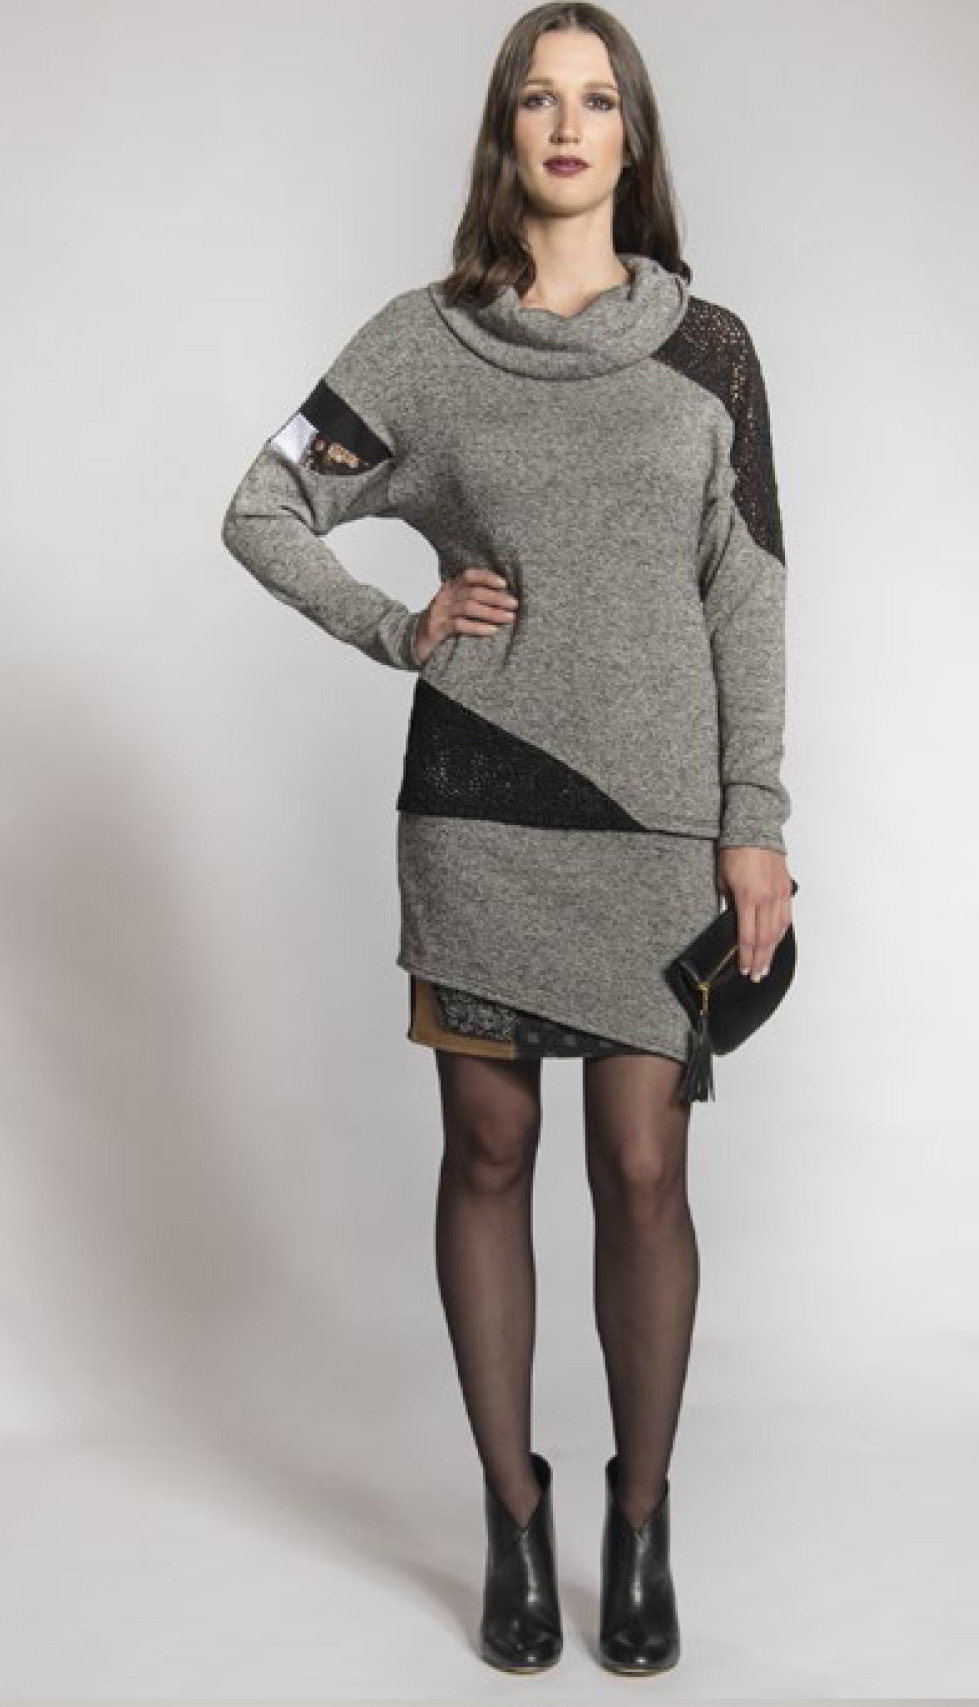 Myco Anna: Eco-Cotton Asymmetrical Patchwork Sweater (2 Left!)